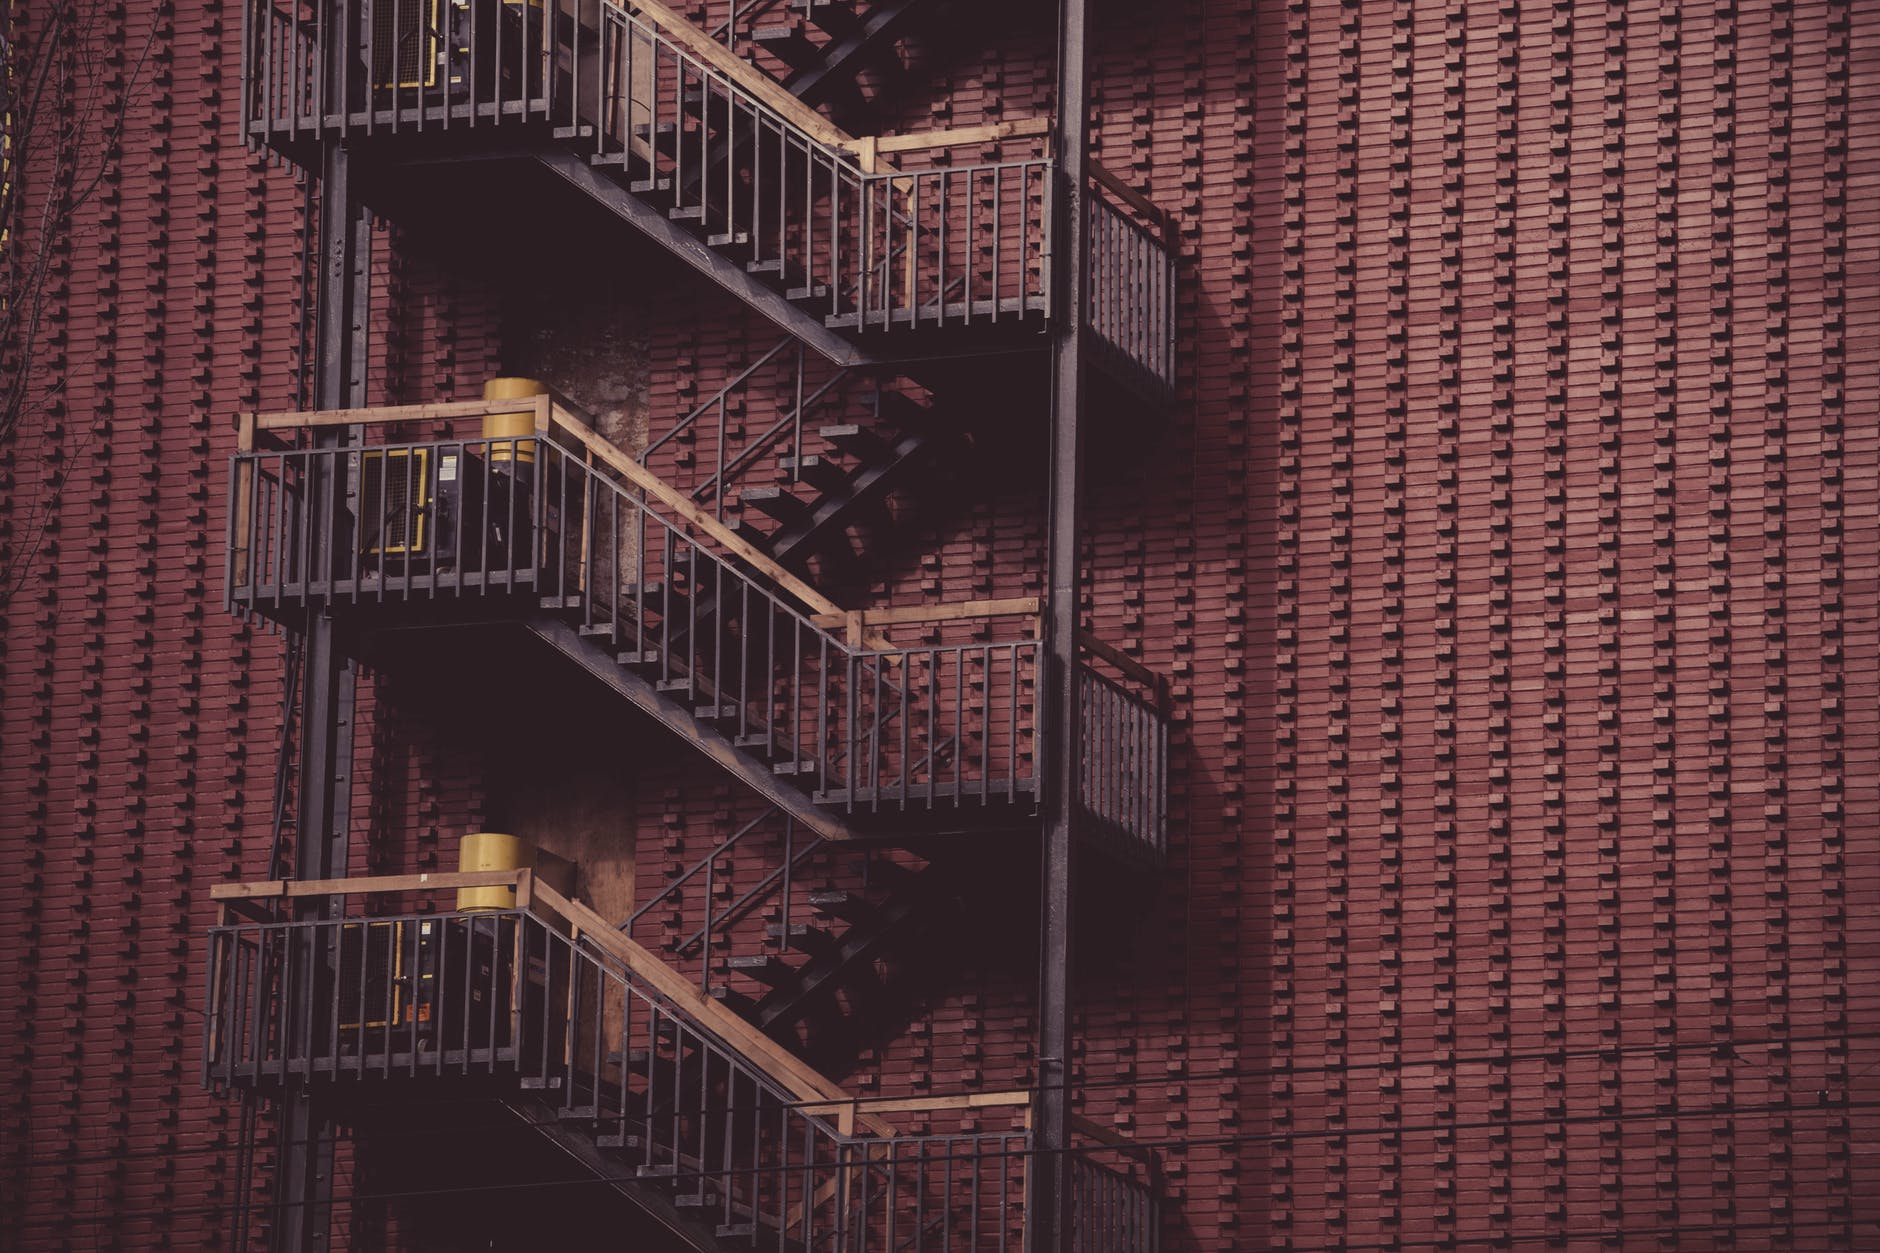 architecture building fire exit ladders ladder